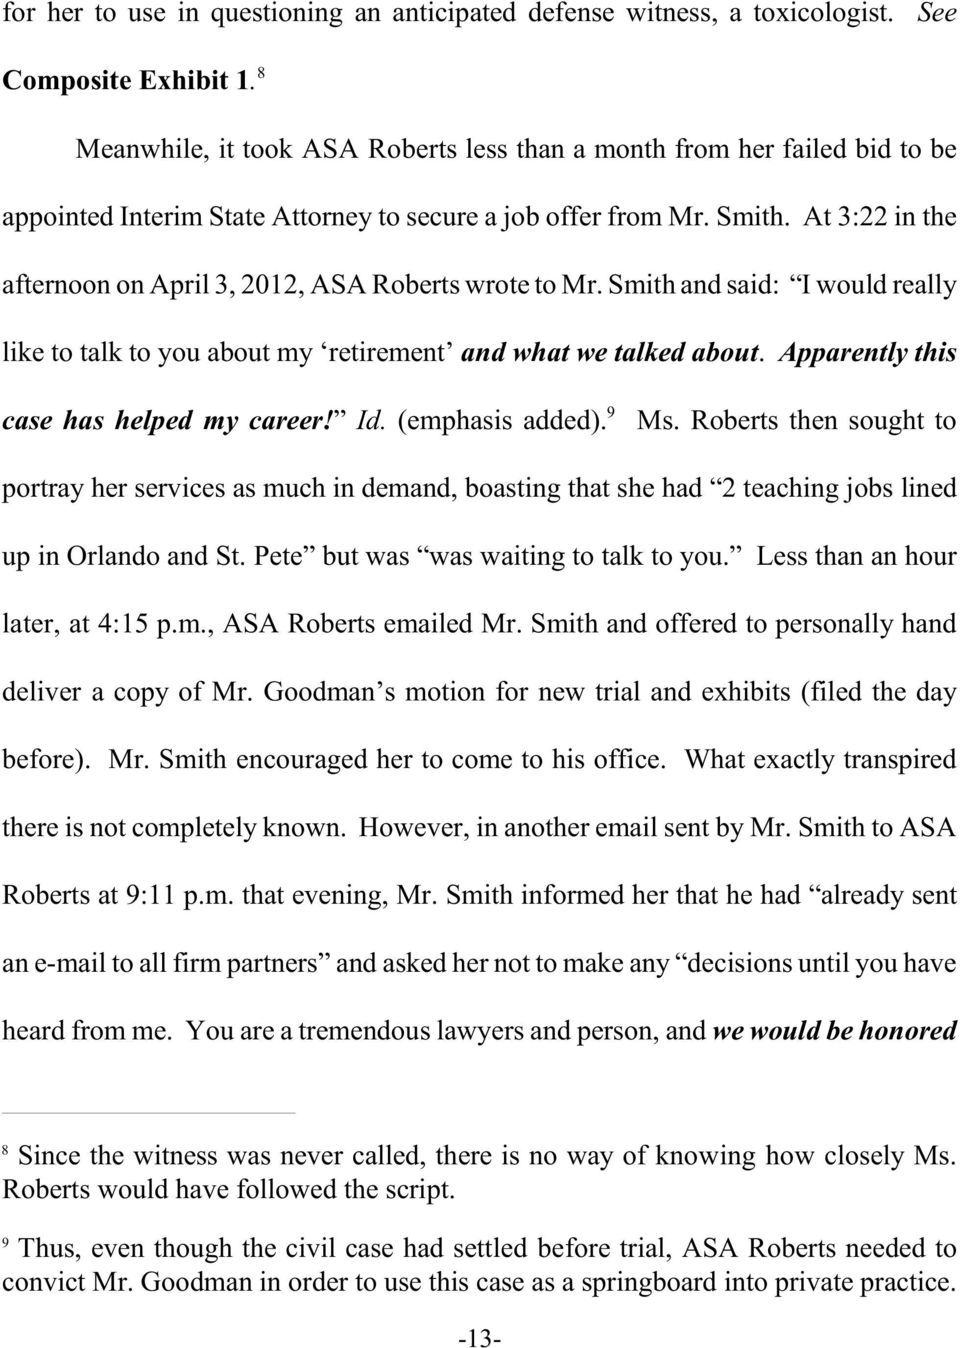 At 3:22 in the afternoon on April 3, 2012, ASA Roberts wrote to Mr. Smith and said: I would really like to talk to you about my retirement and what we talked about.